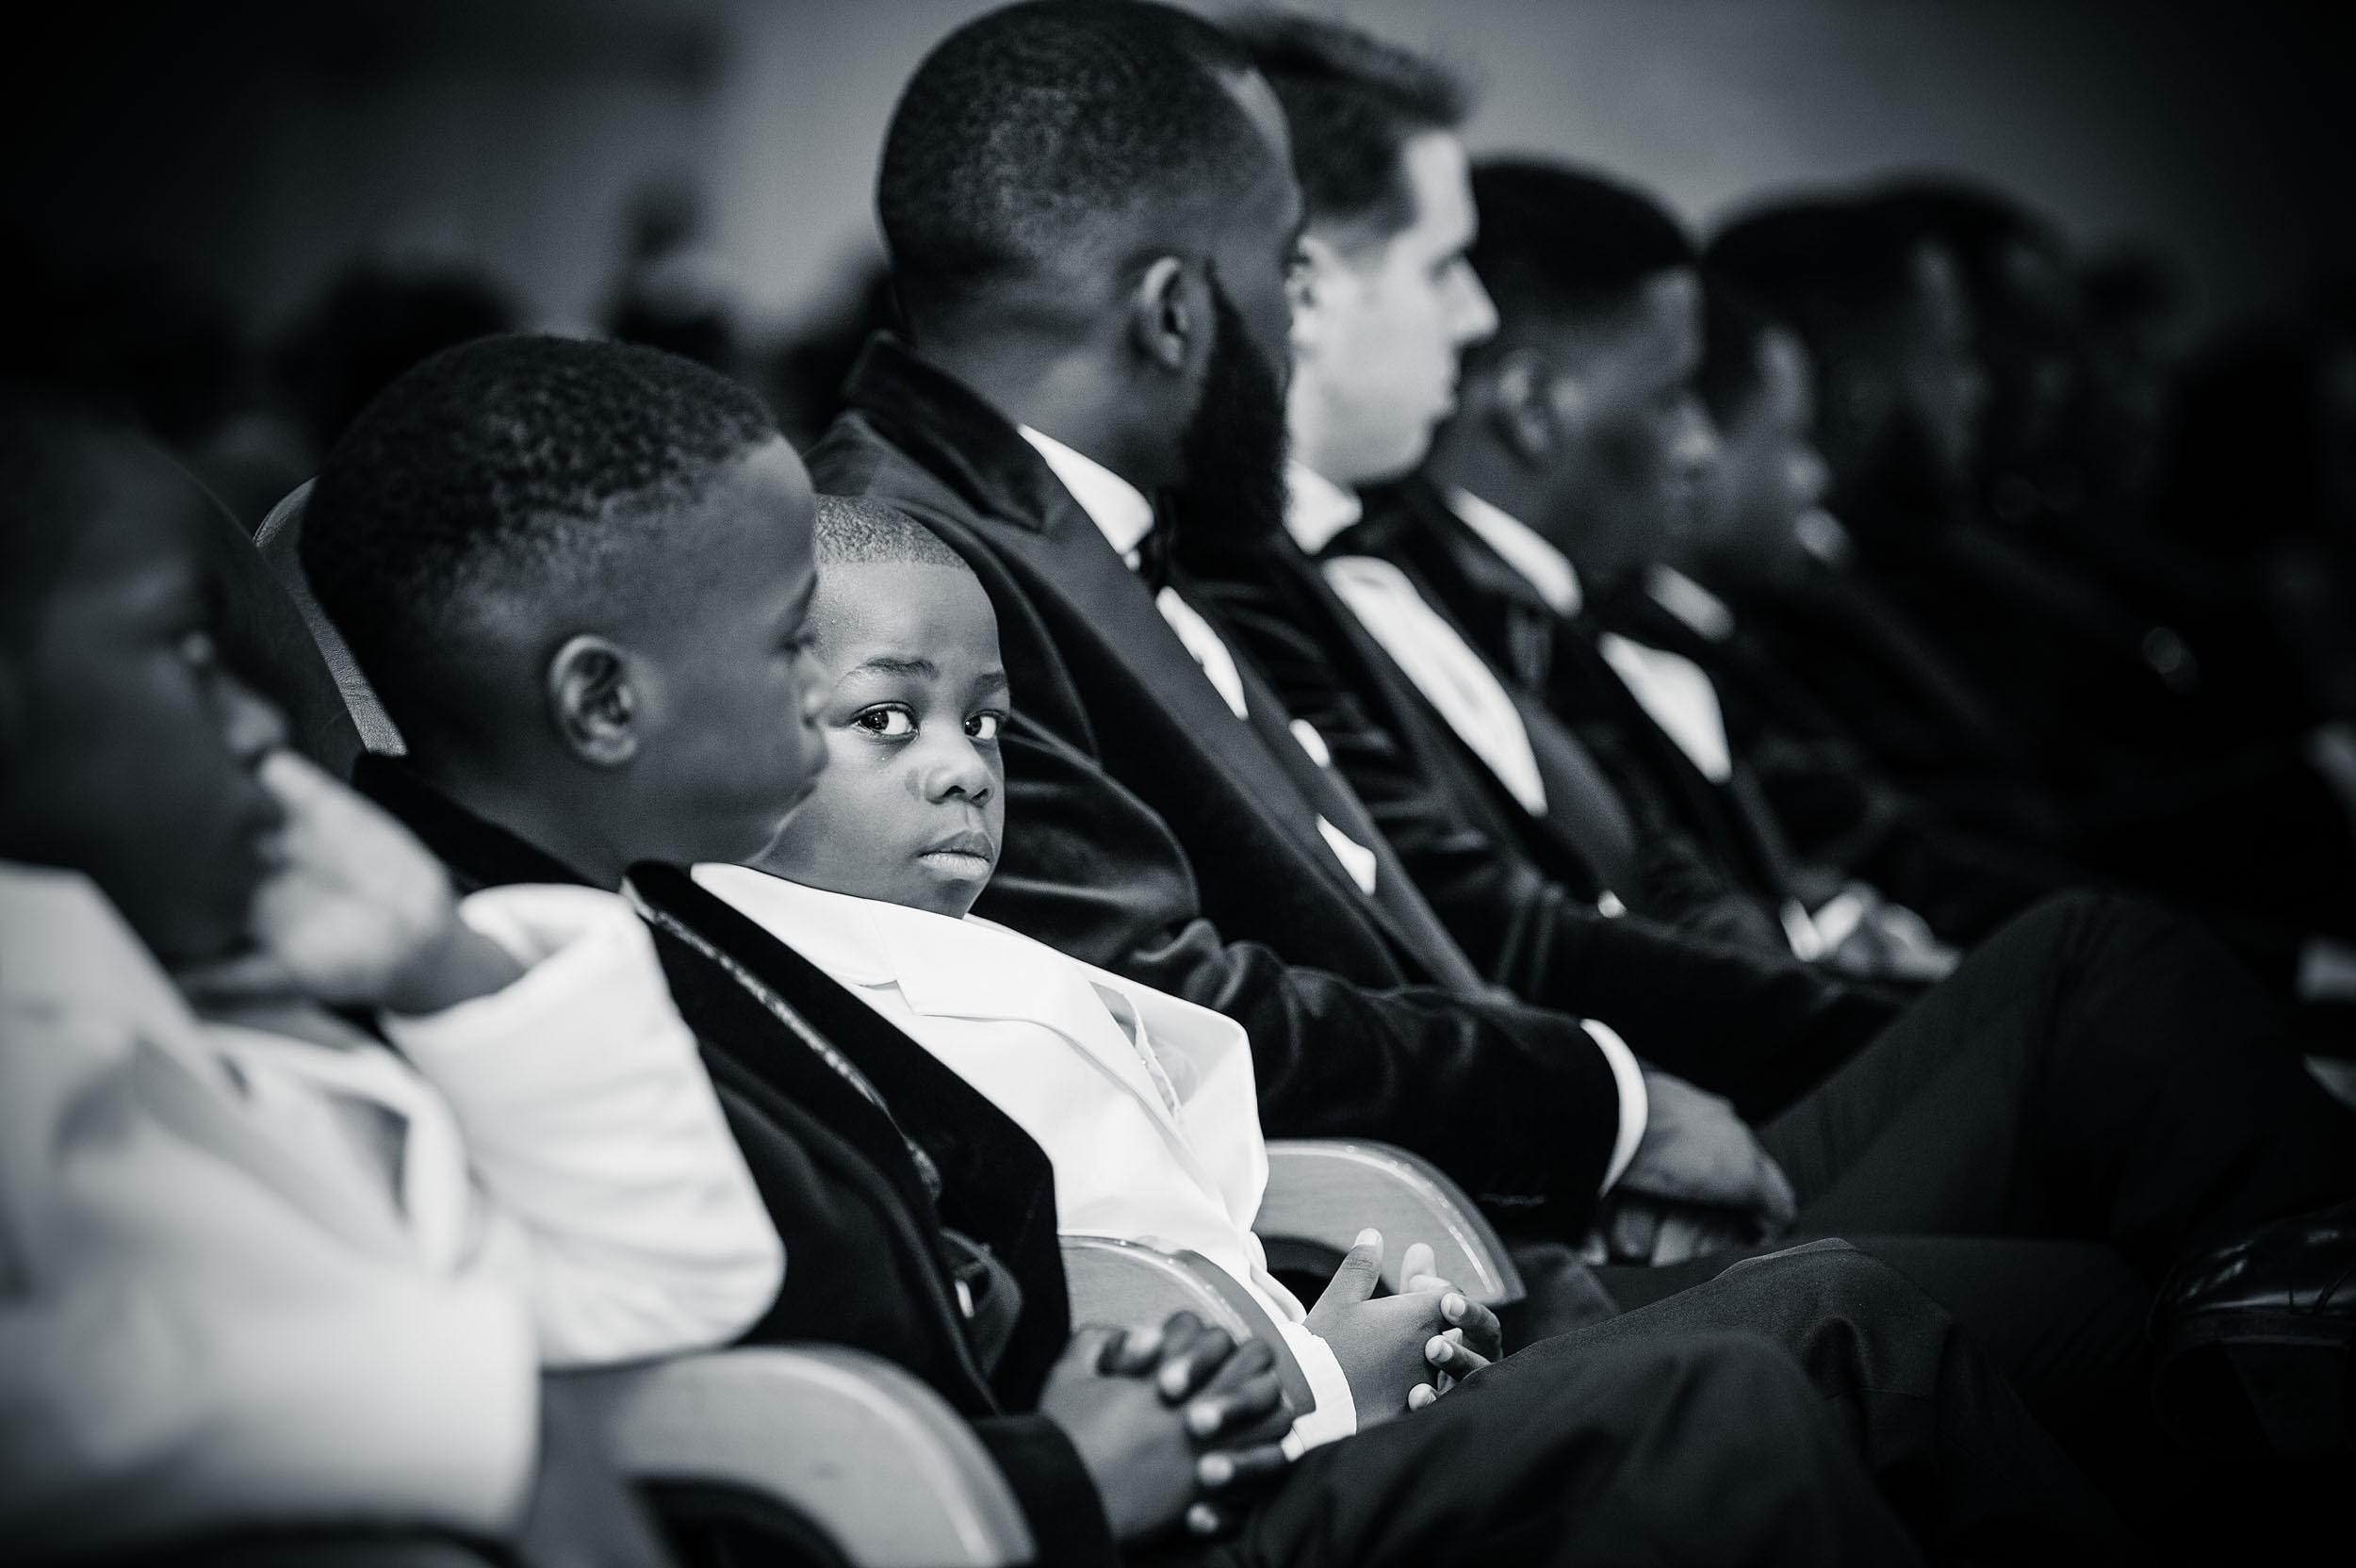 boy-sitting-wedding-ceremony-uckg-church-kilburn-north-london-photographer